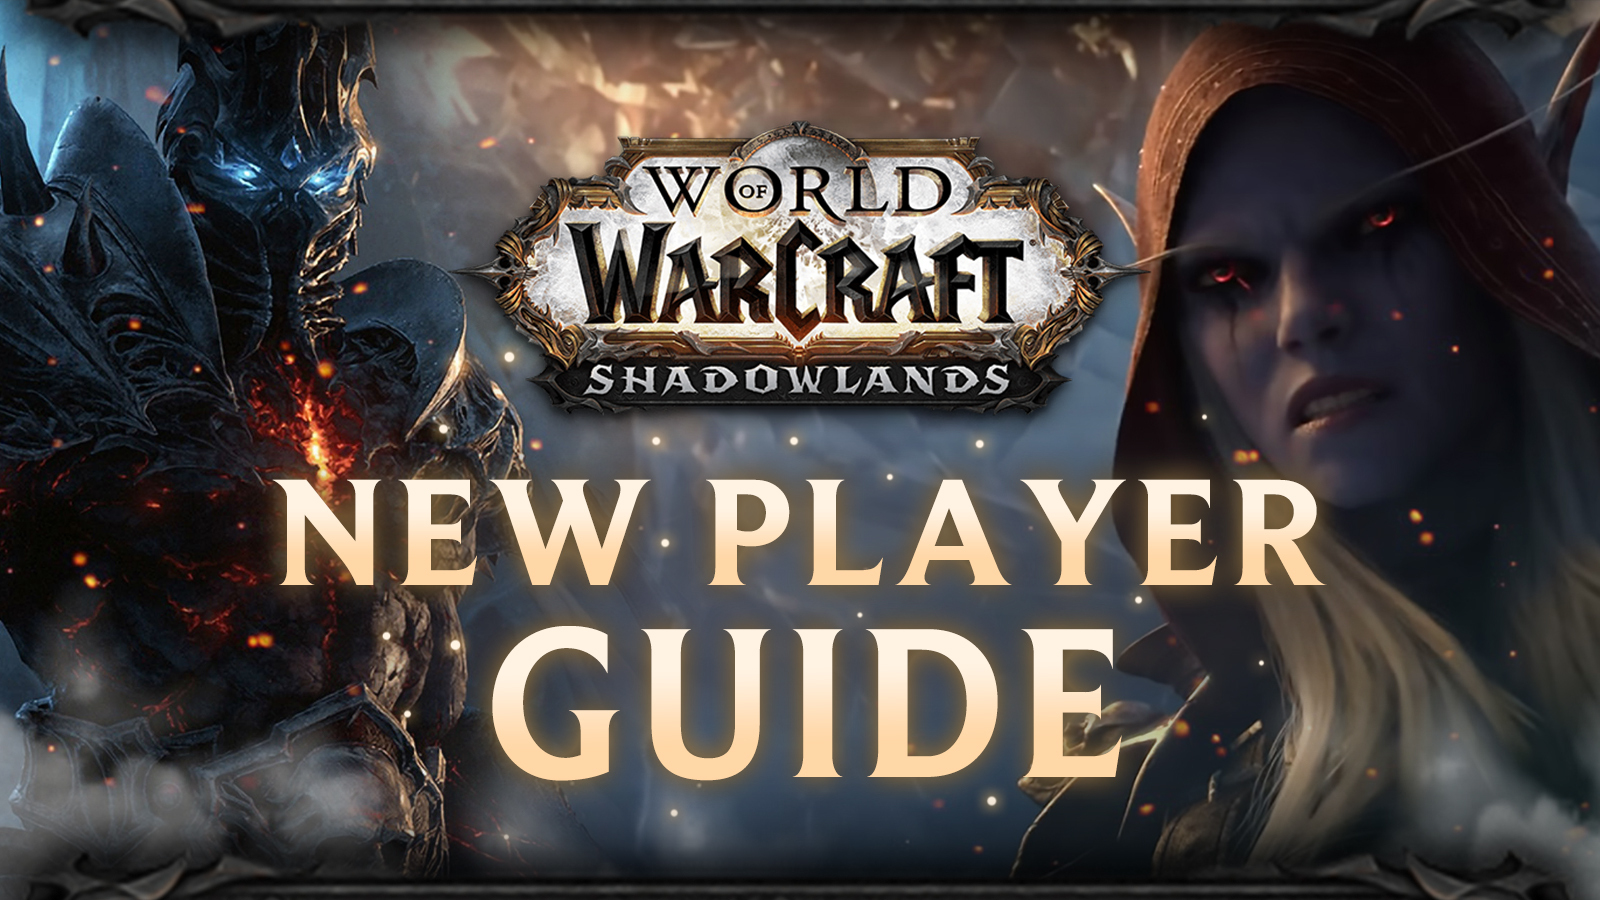 New player guide for WoW, with Sylvanas and Lich King